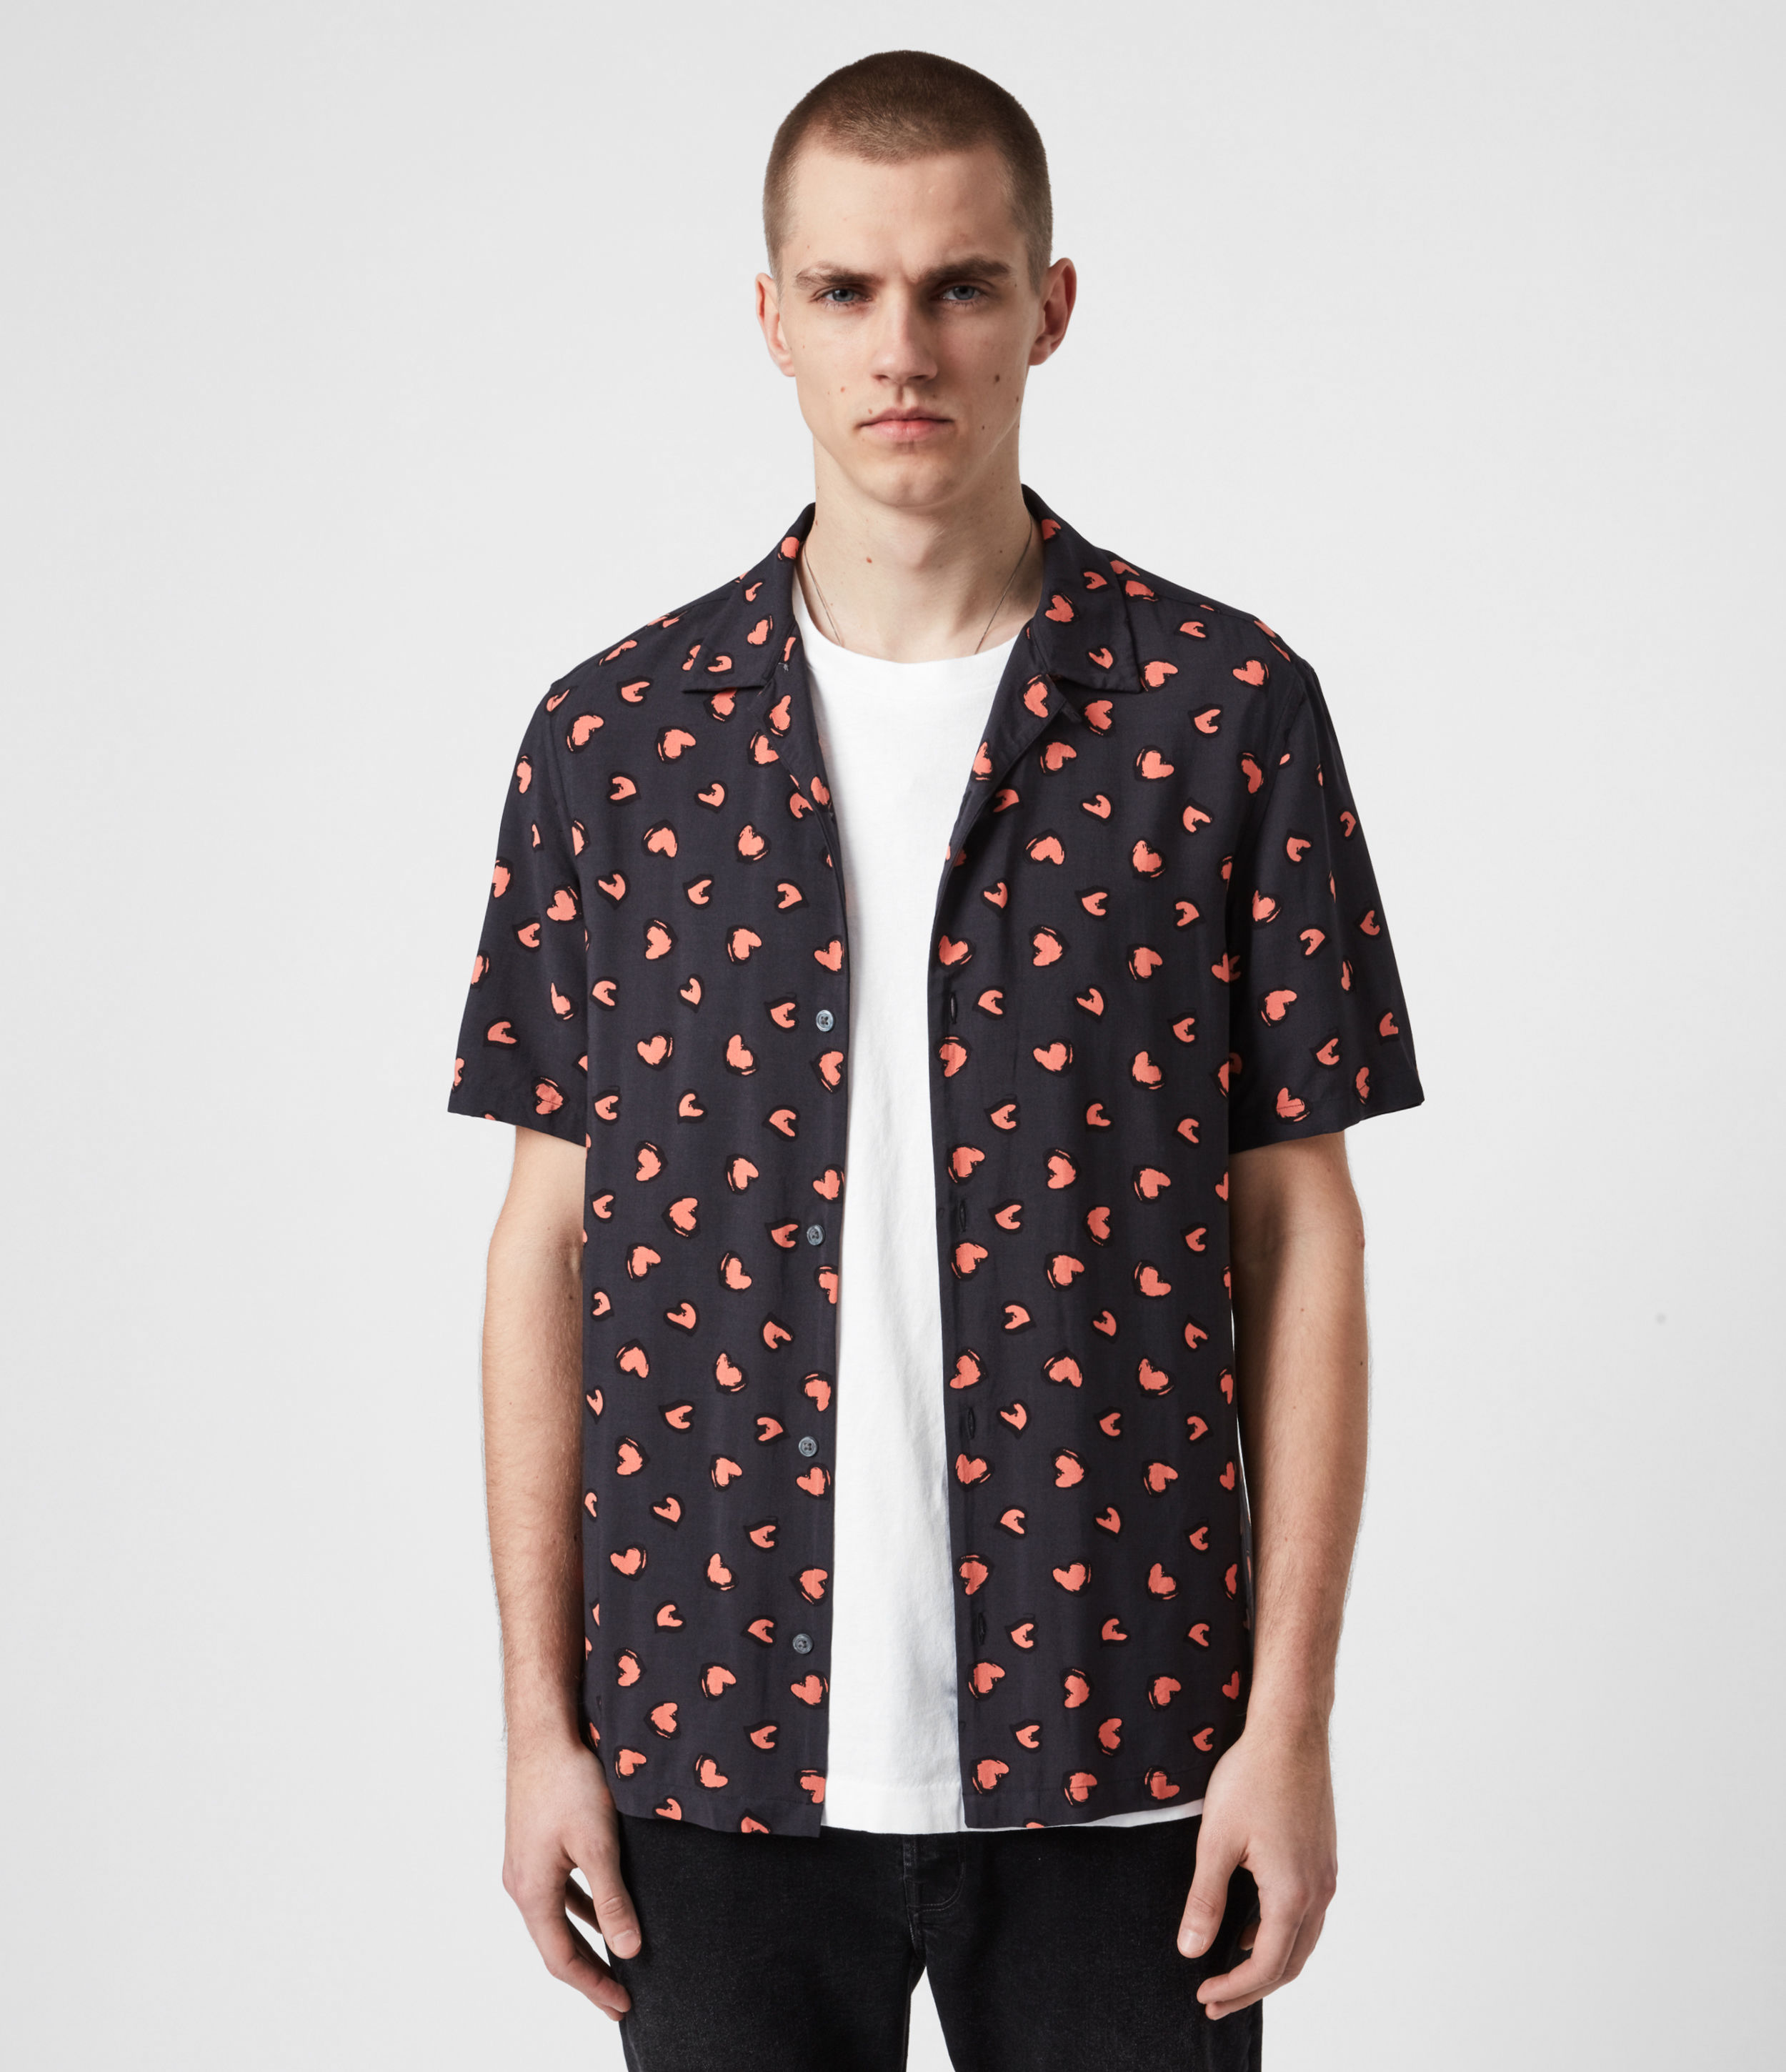 AllSaints Men's Heart Print Lightweight Romanza Shirt, Black and Pink, Size: M